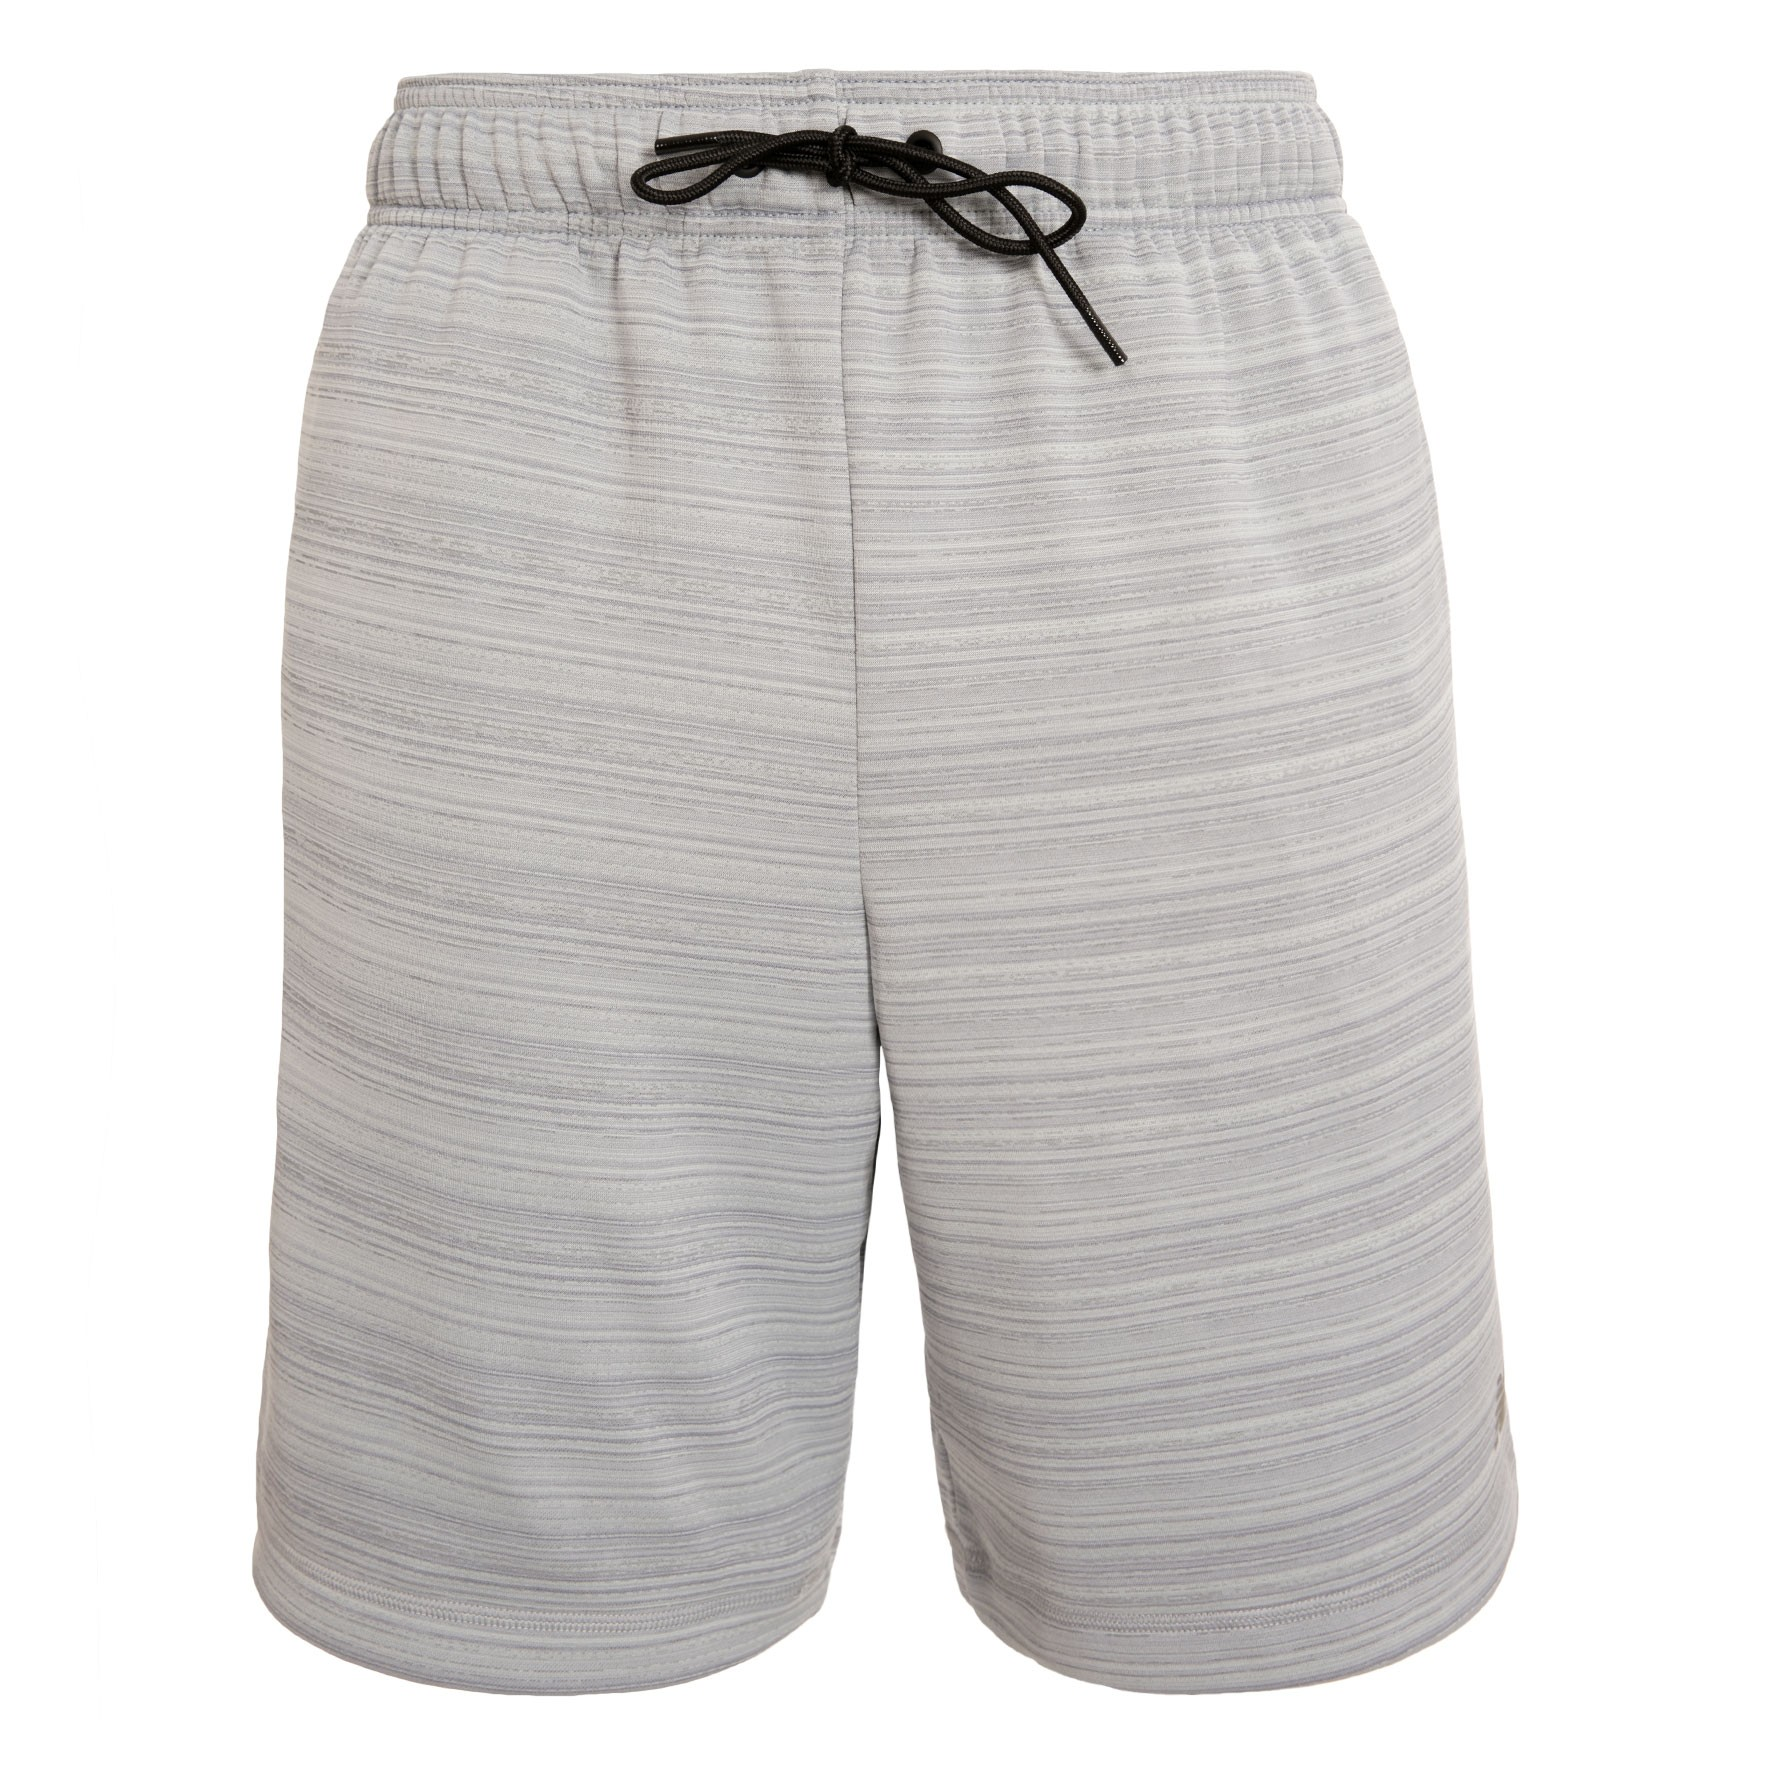 New Balance Grey Kairosport Shorts